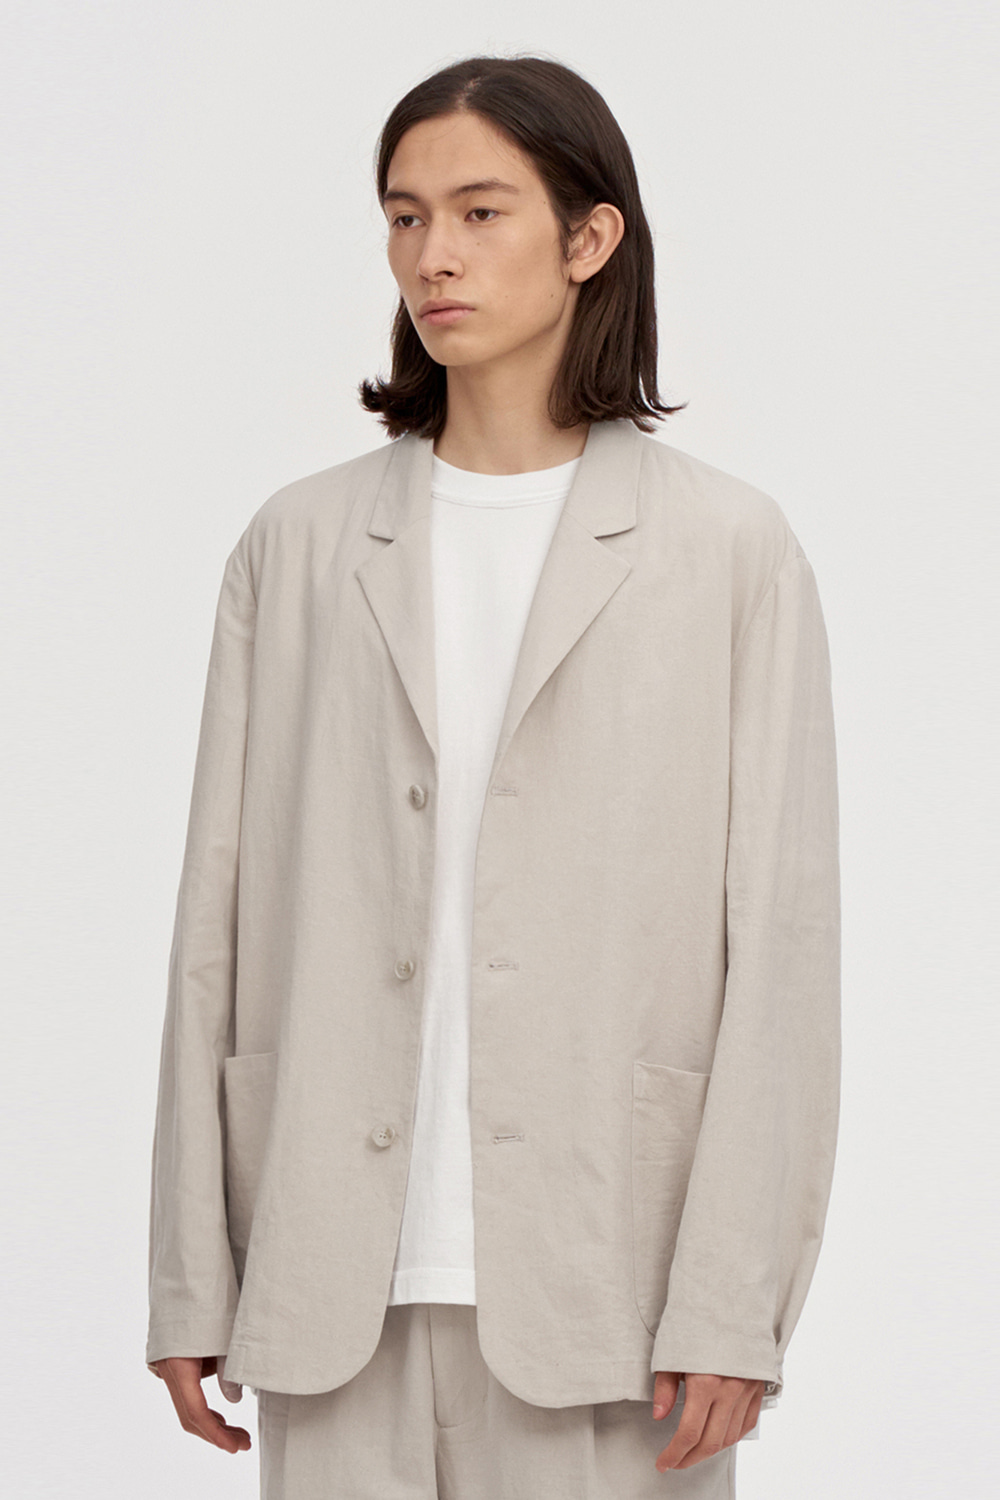 Linen Jacket Men [Light Beige]